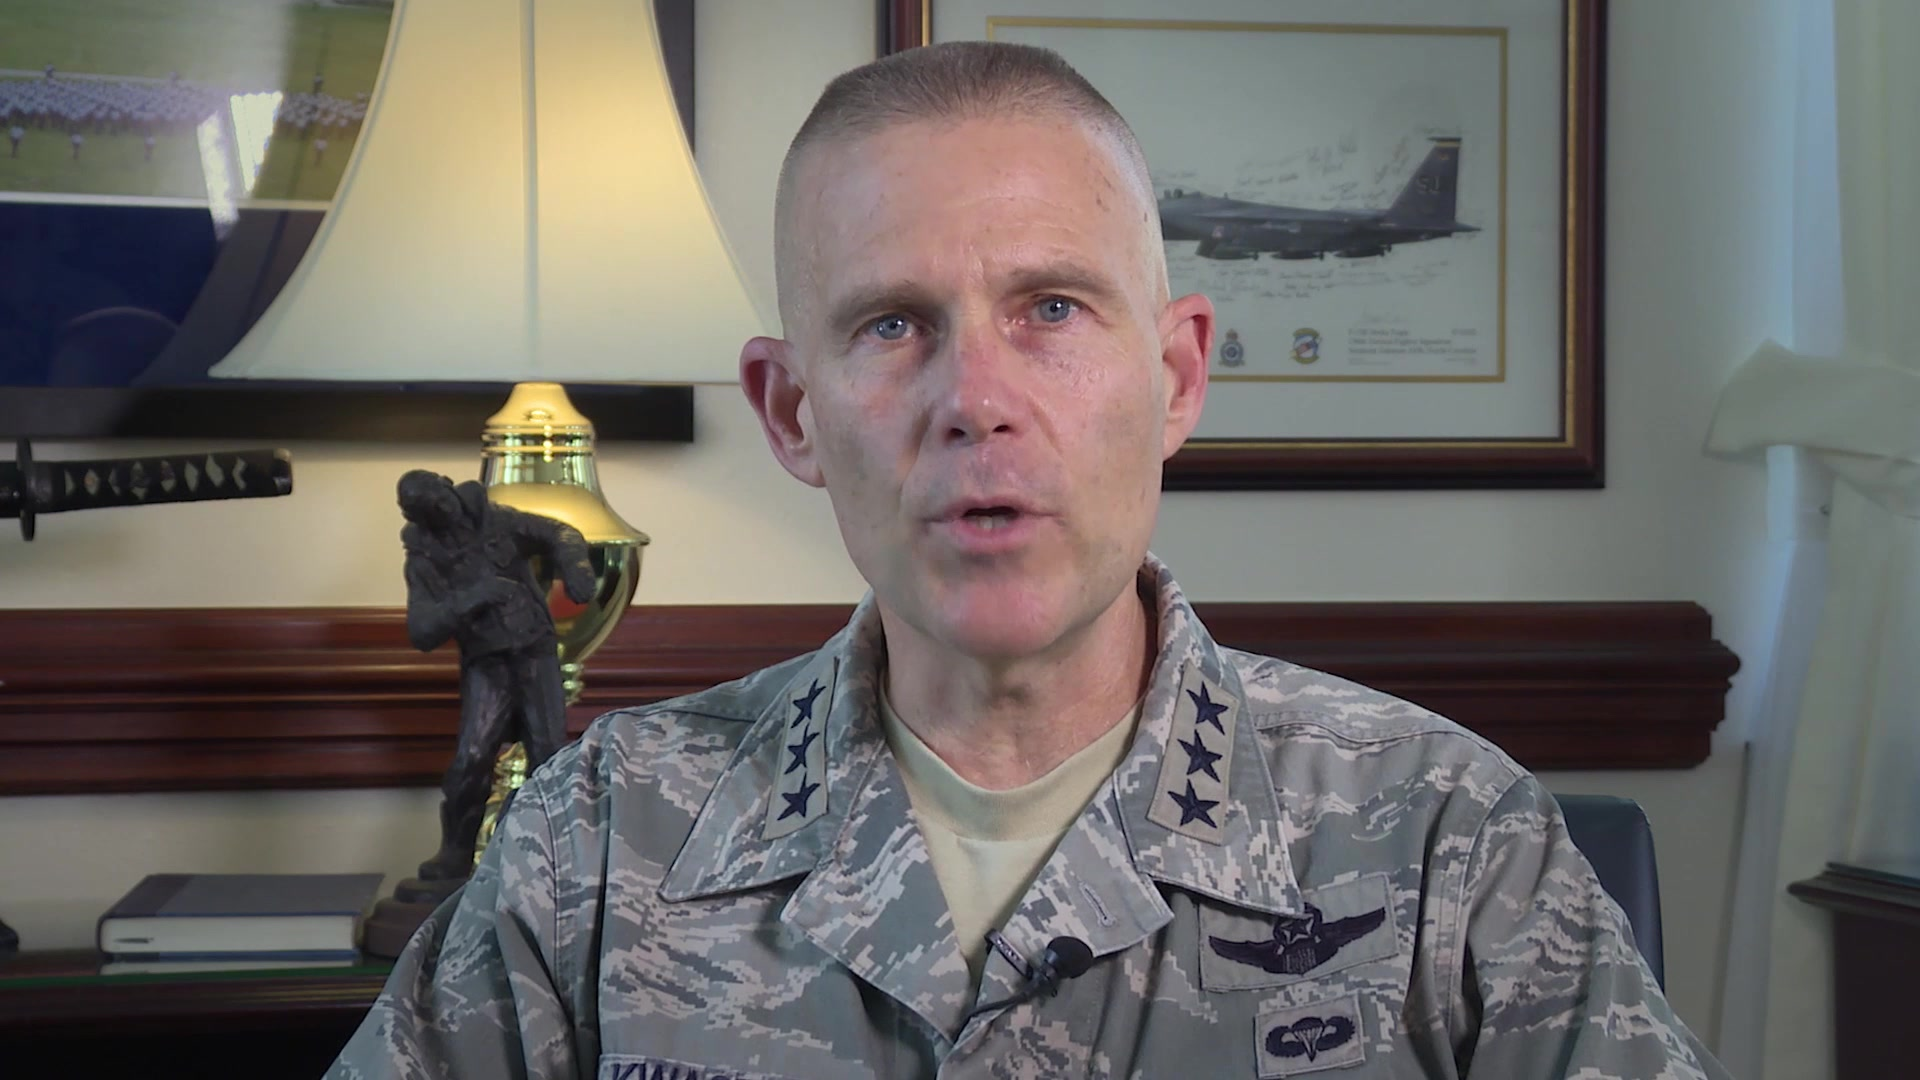 Changing Paradigms... Give control to the student of what they learn, when they learn it, how they learn it...    Check out the latest Commander's Intent video from Lt. Gen. Steve Kwast where he discusses the importance of communicating with purpose.